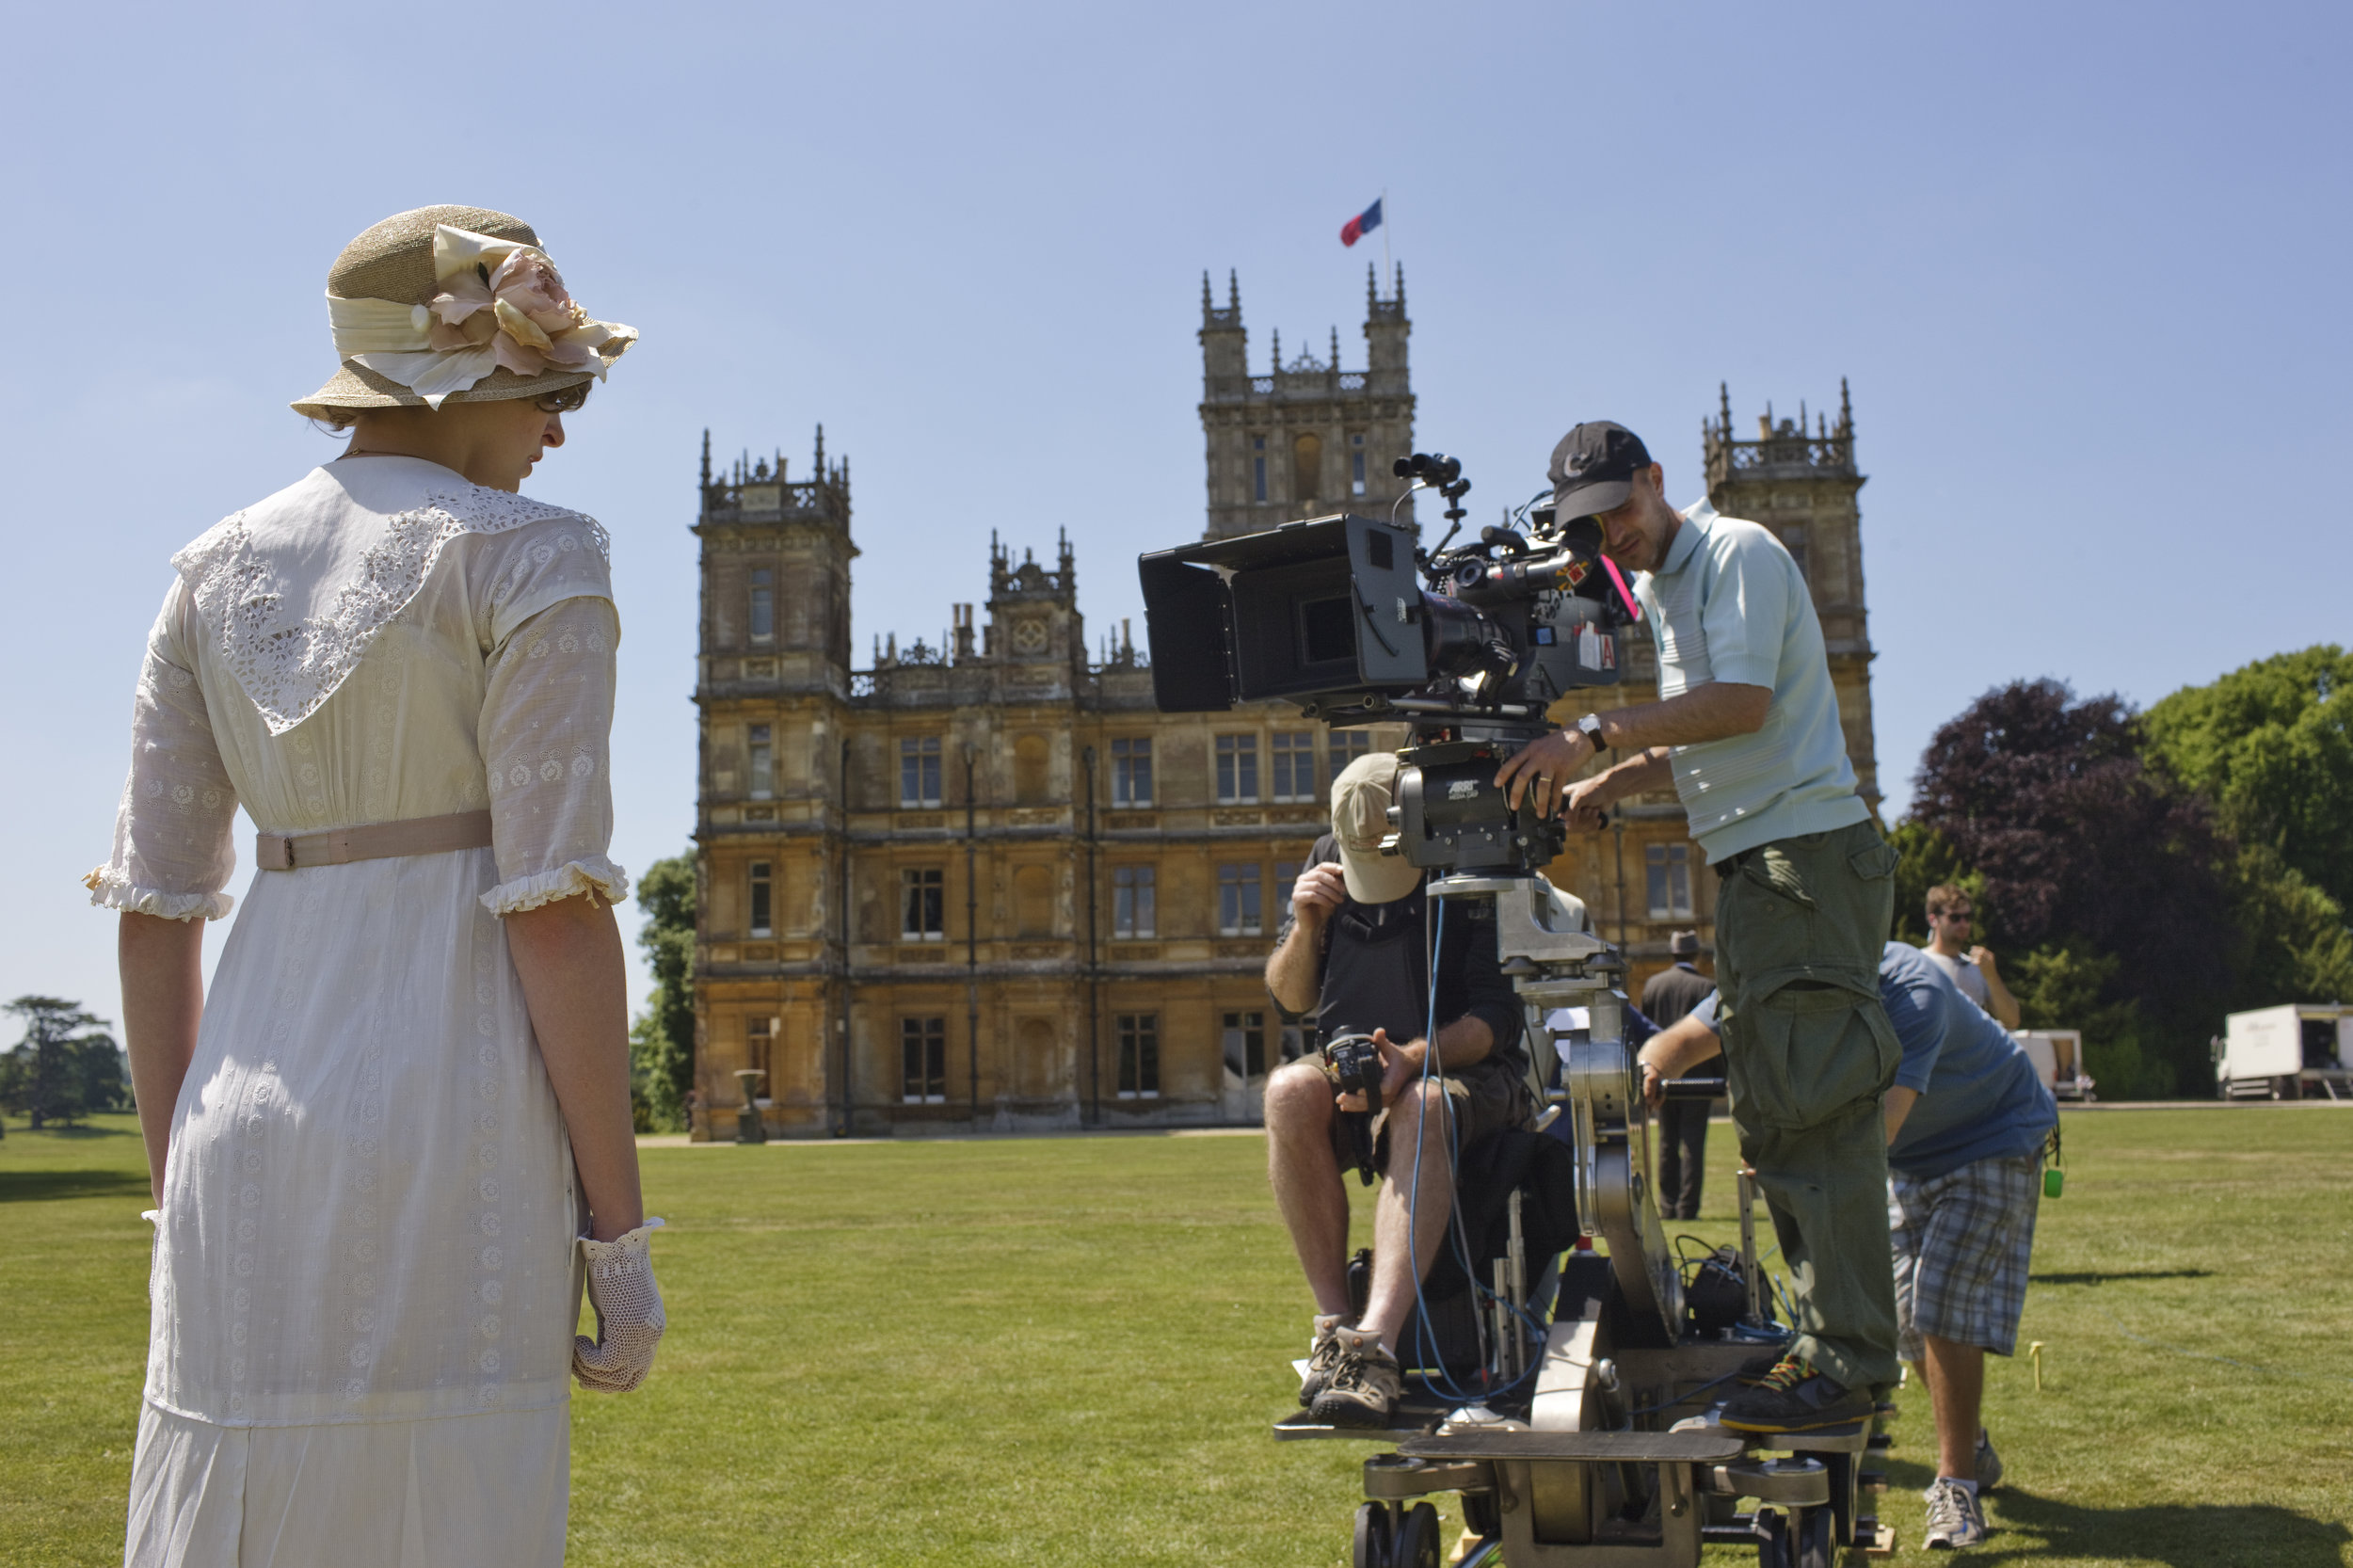 Downton Abbey at Highclere